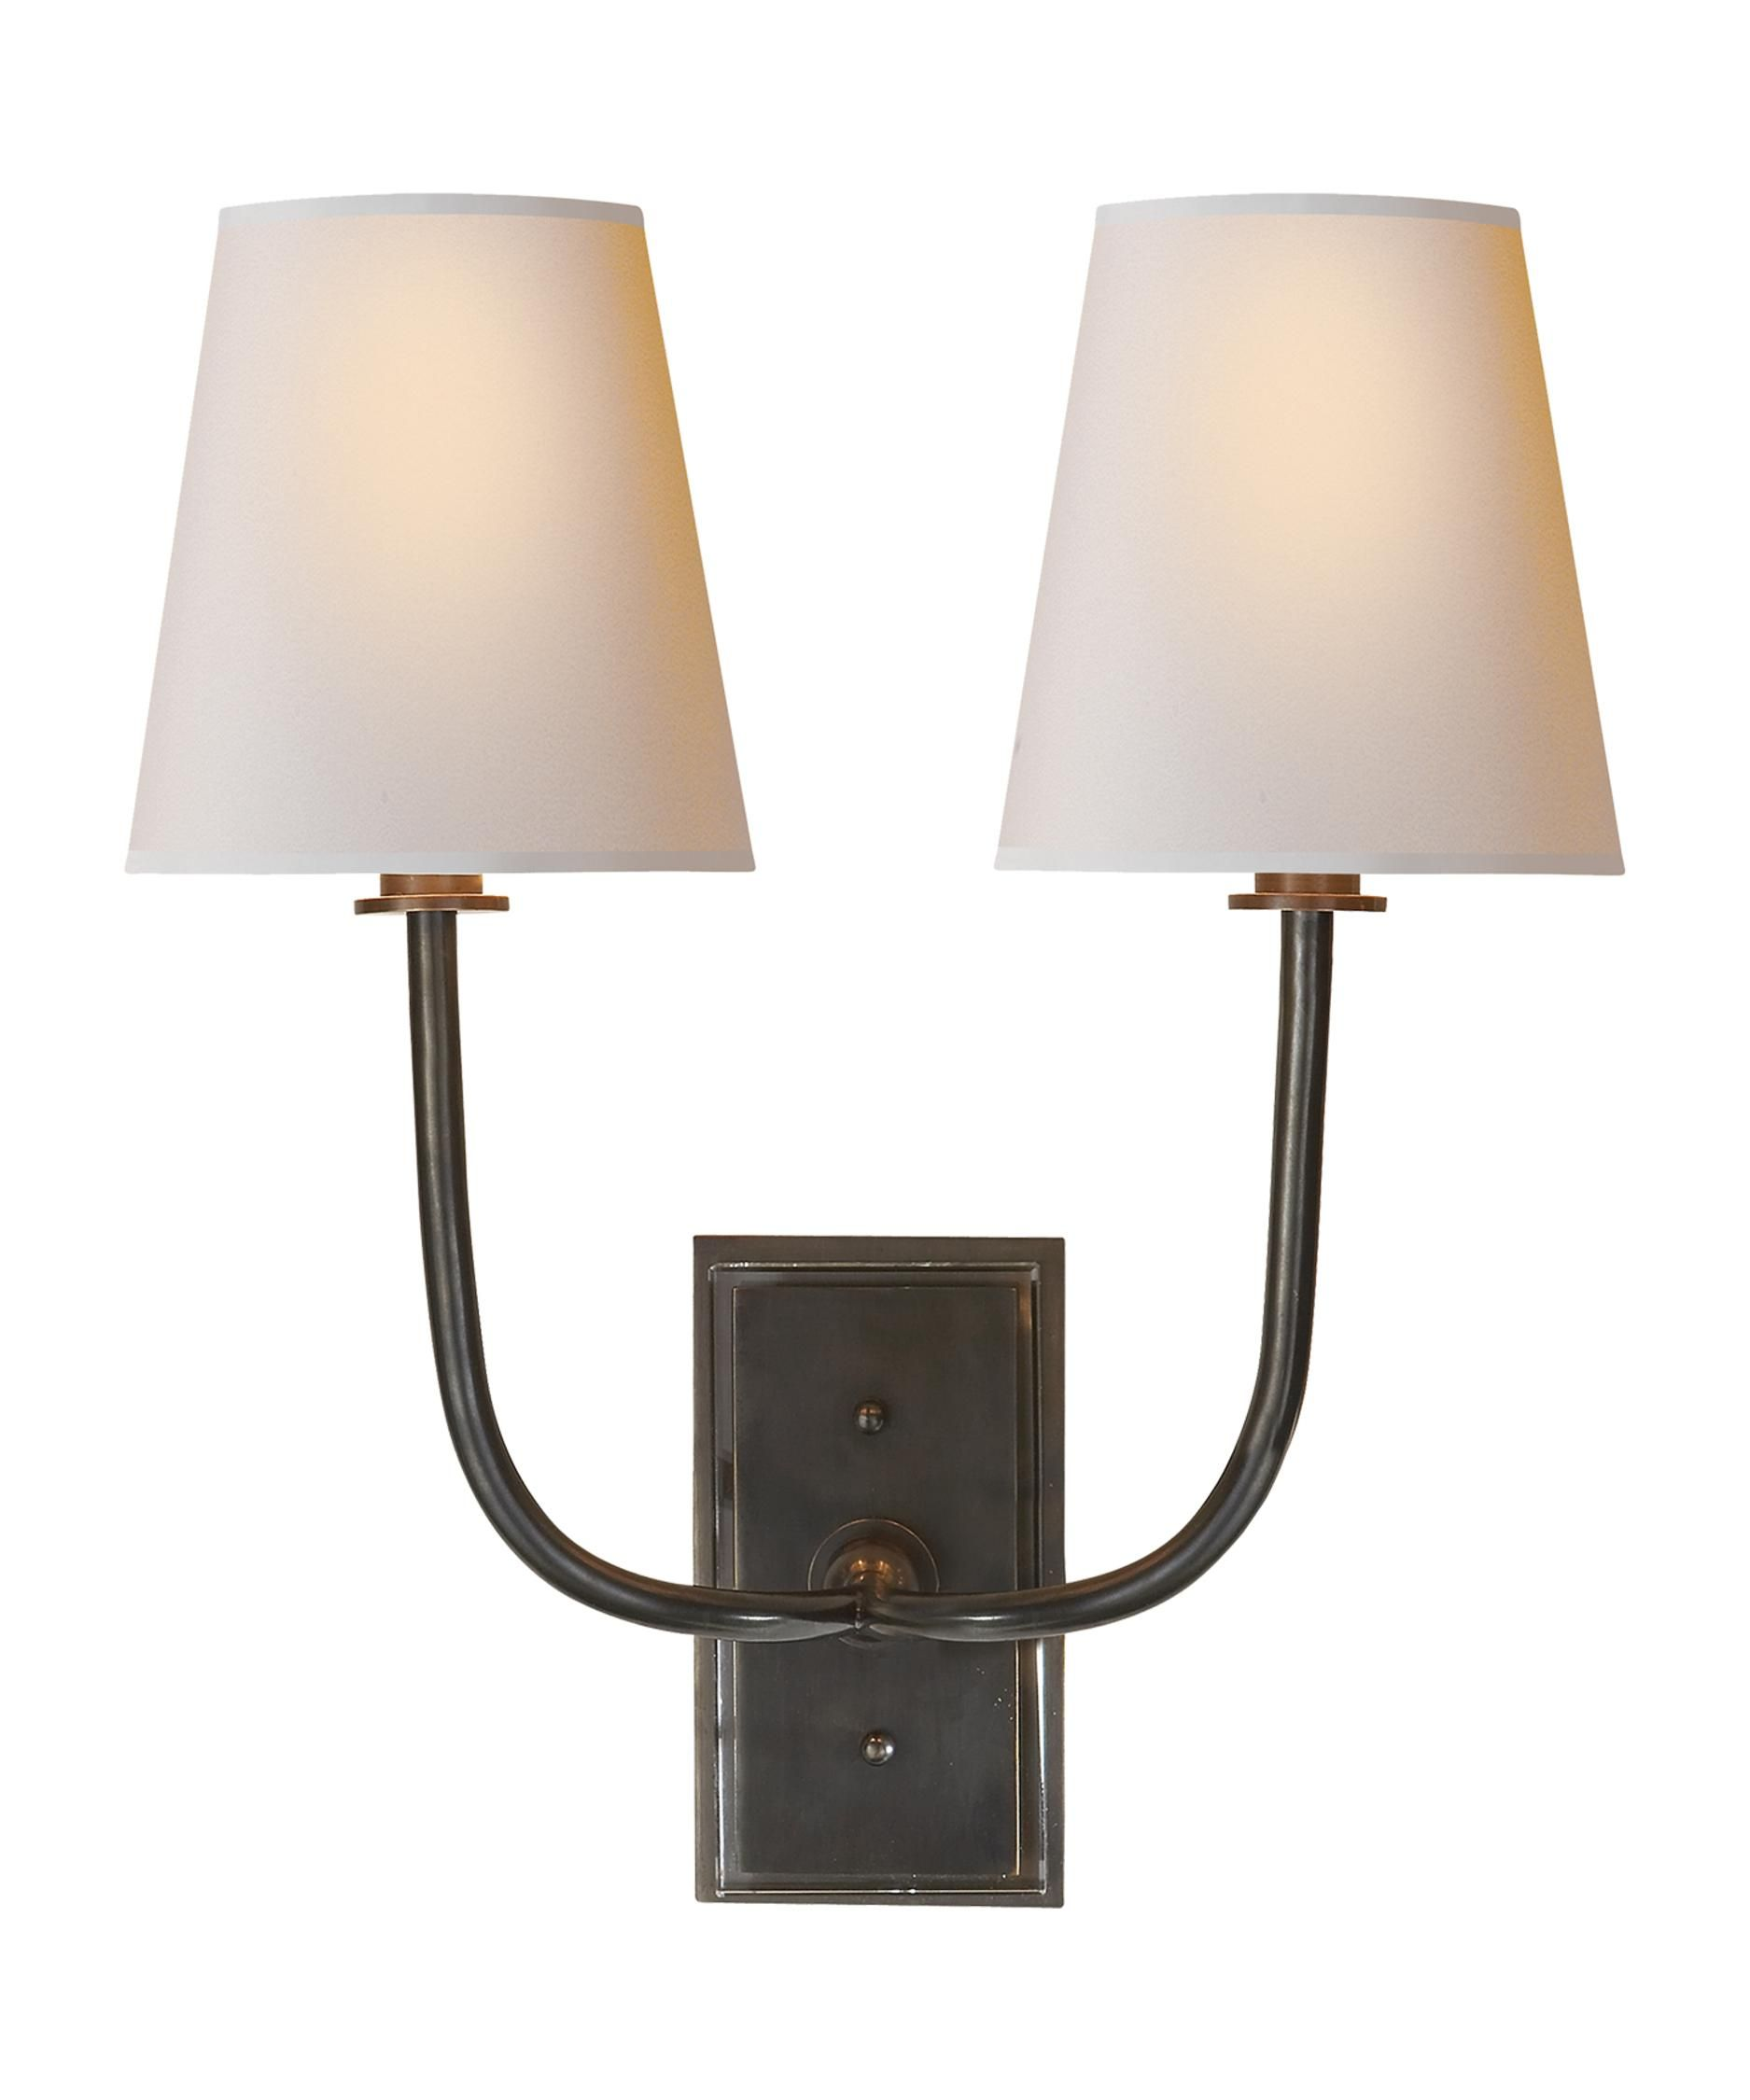 visual dr pin sconce inch comfort hulton wall